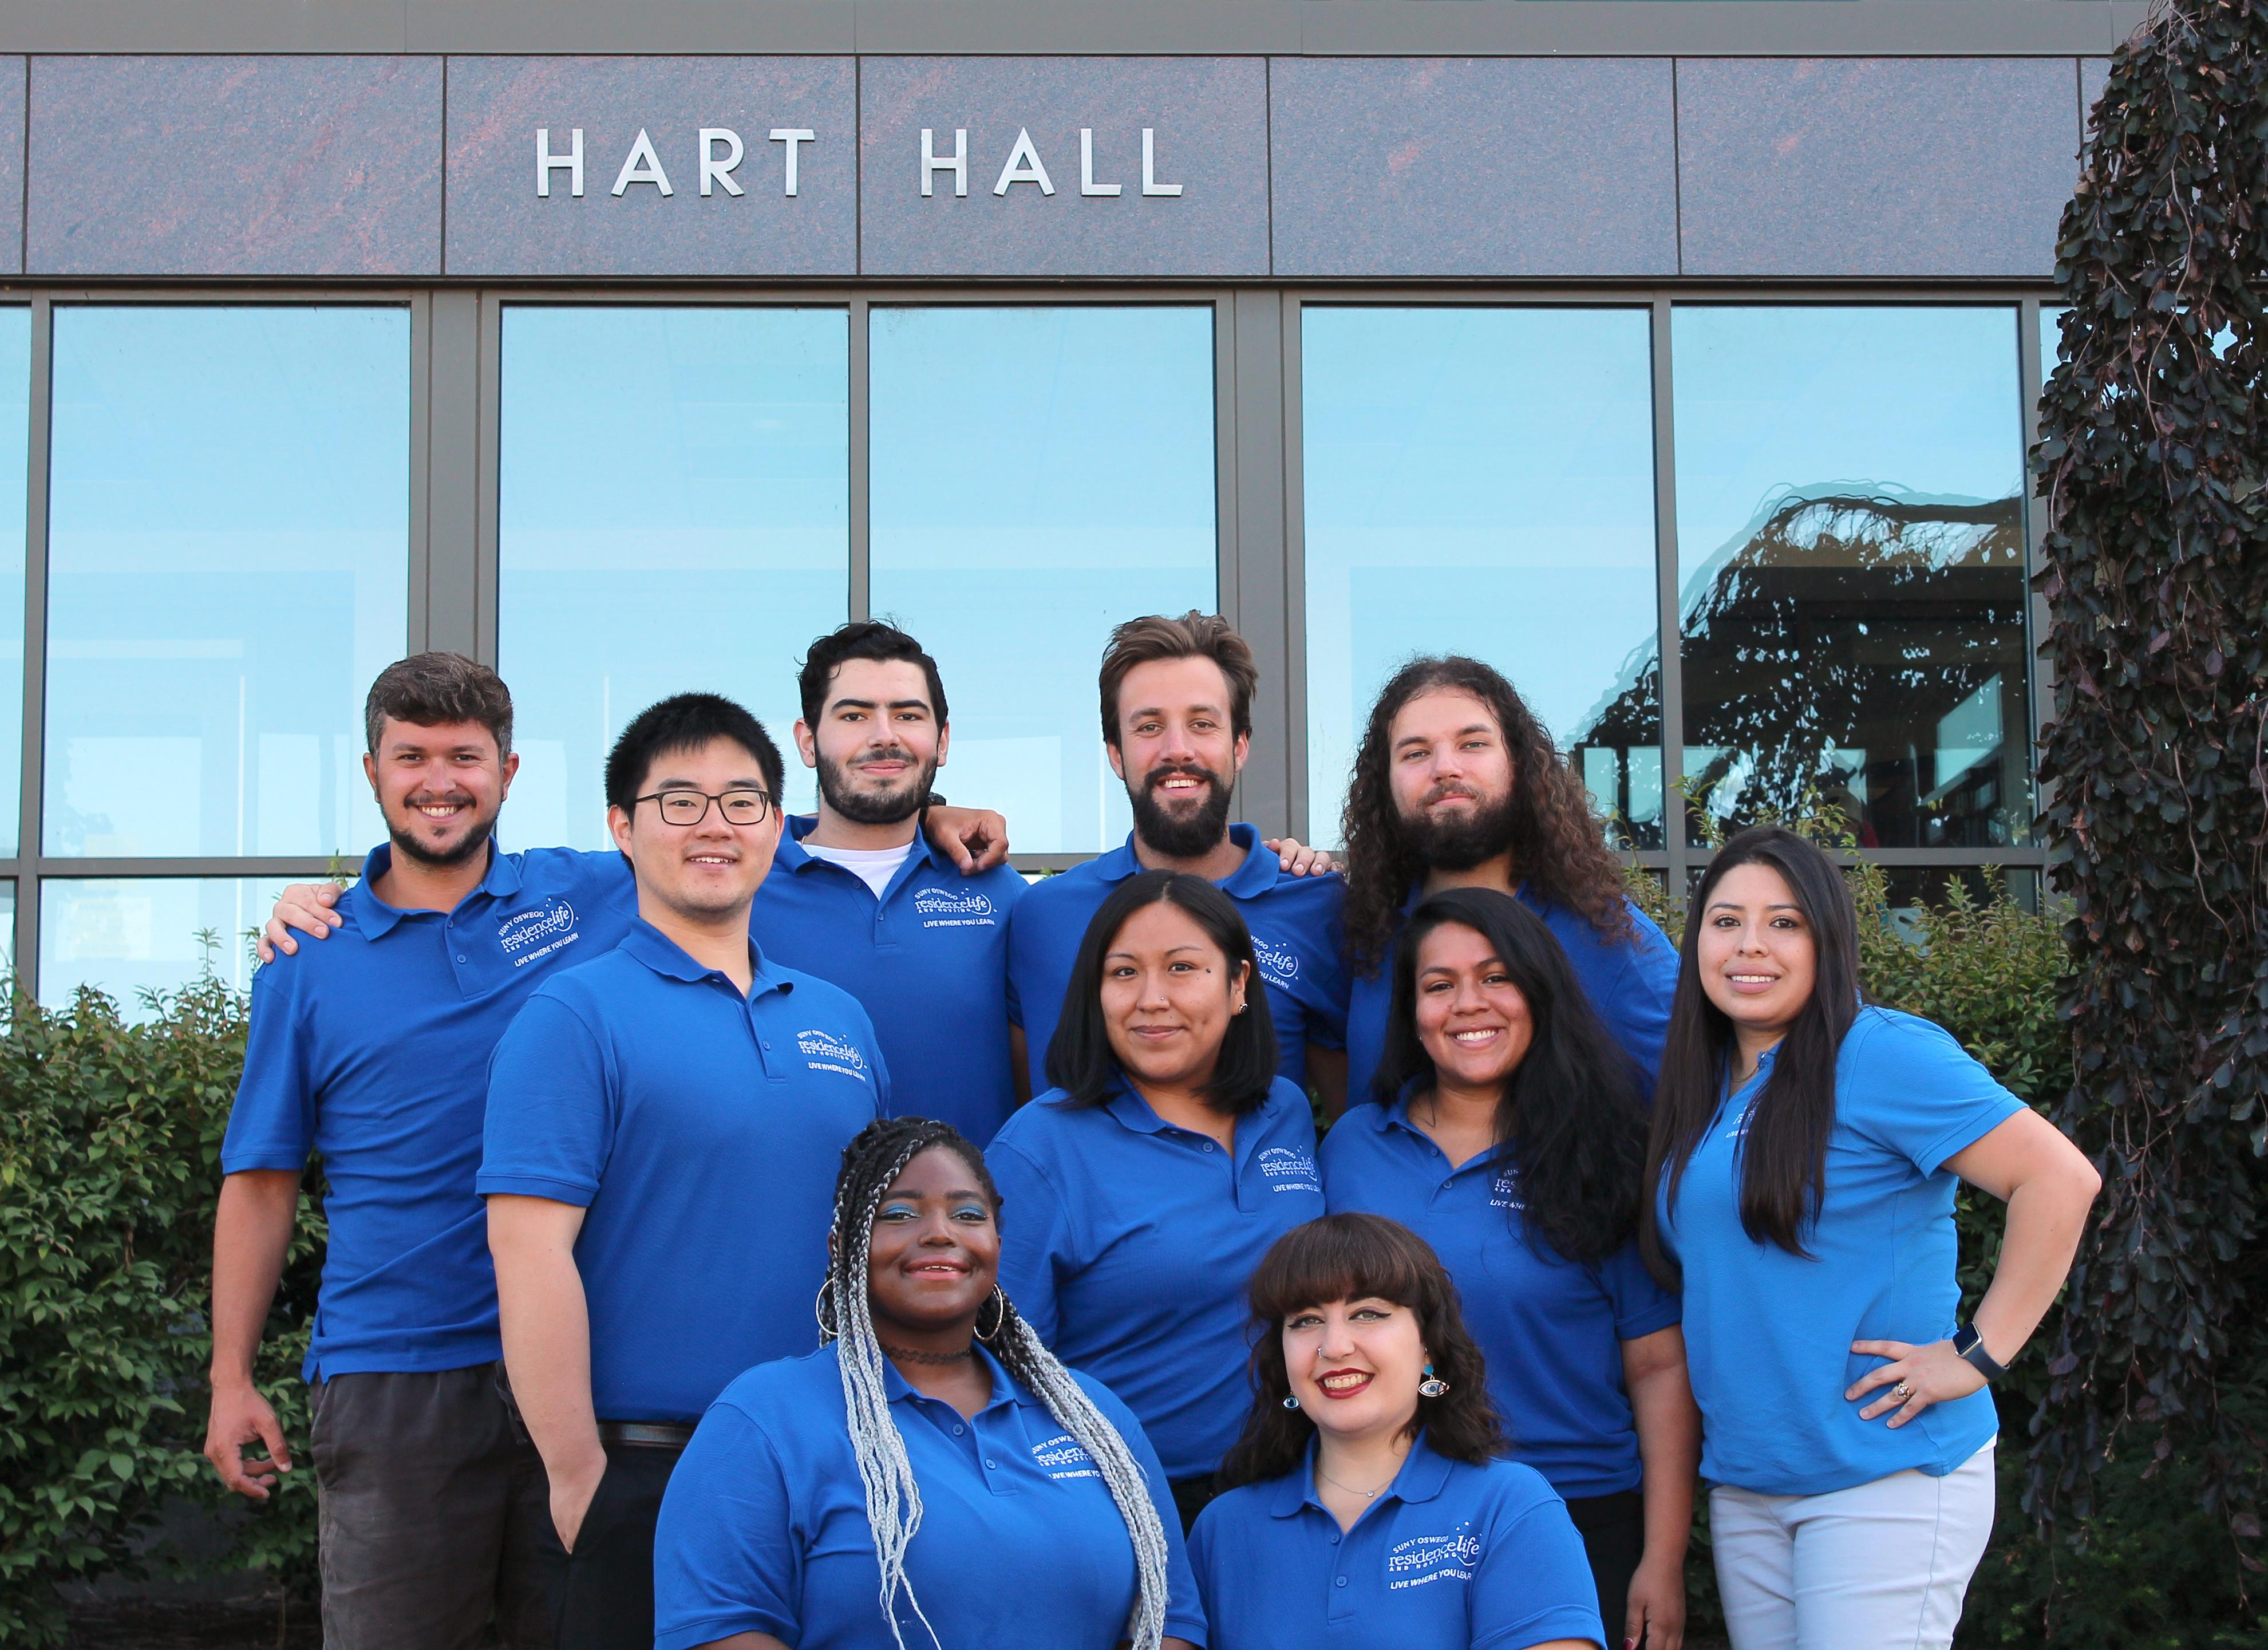 Hart Hall Resident Student Staff group photo. We're ready to welcome you!